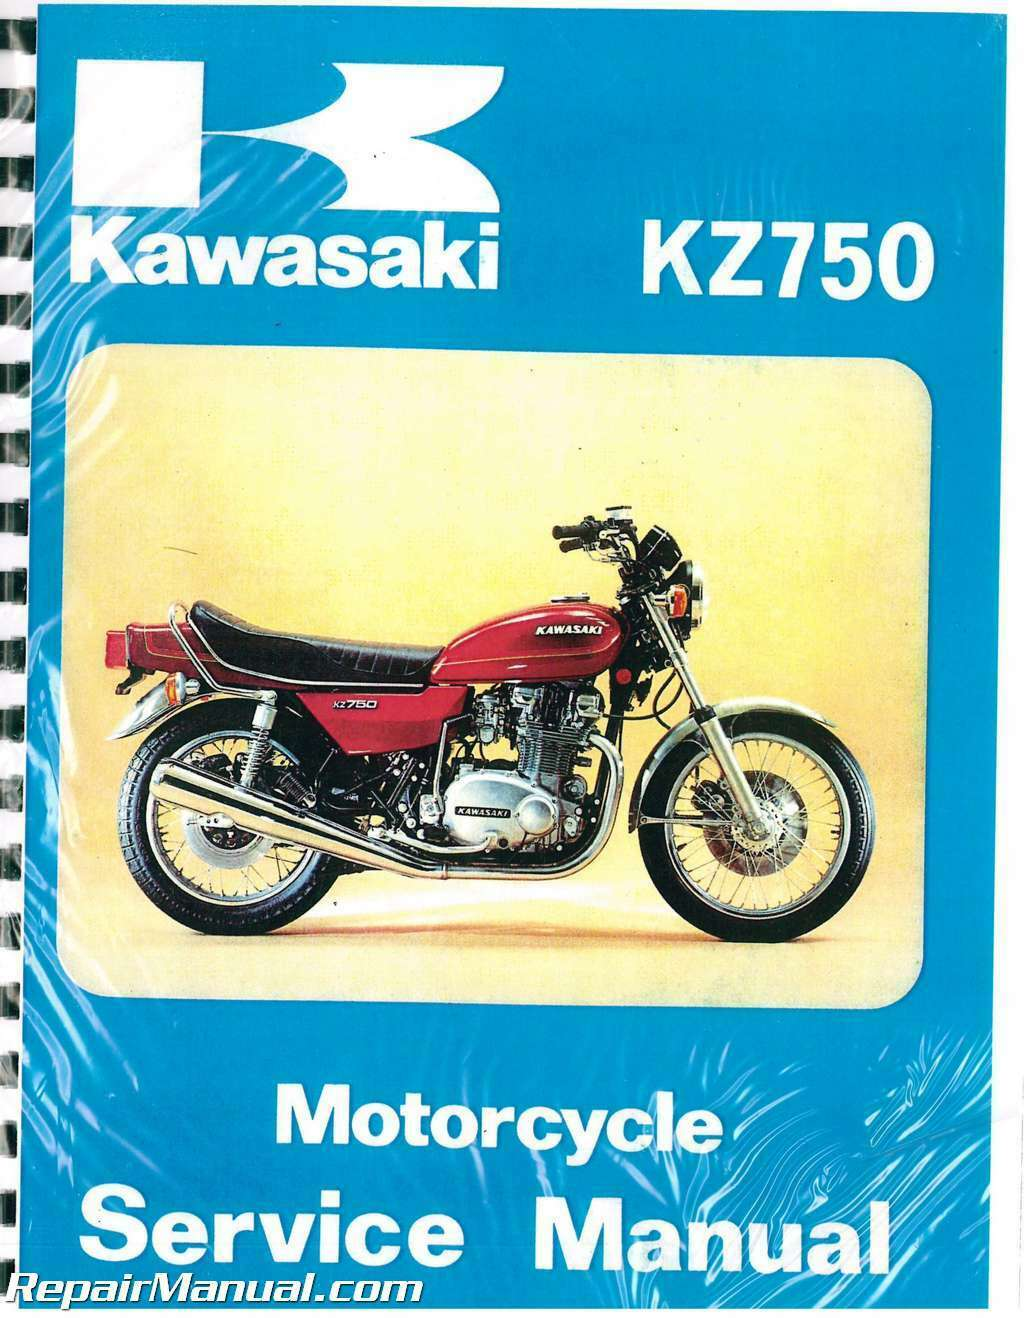 1976 1979 Kawasaki Kz750 B Twin Motorcycle Service Manual 5234 1982 Kz1300 Wiring Diagrams 1 Of 1only 4 Available